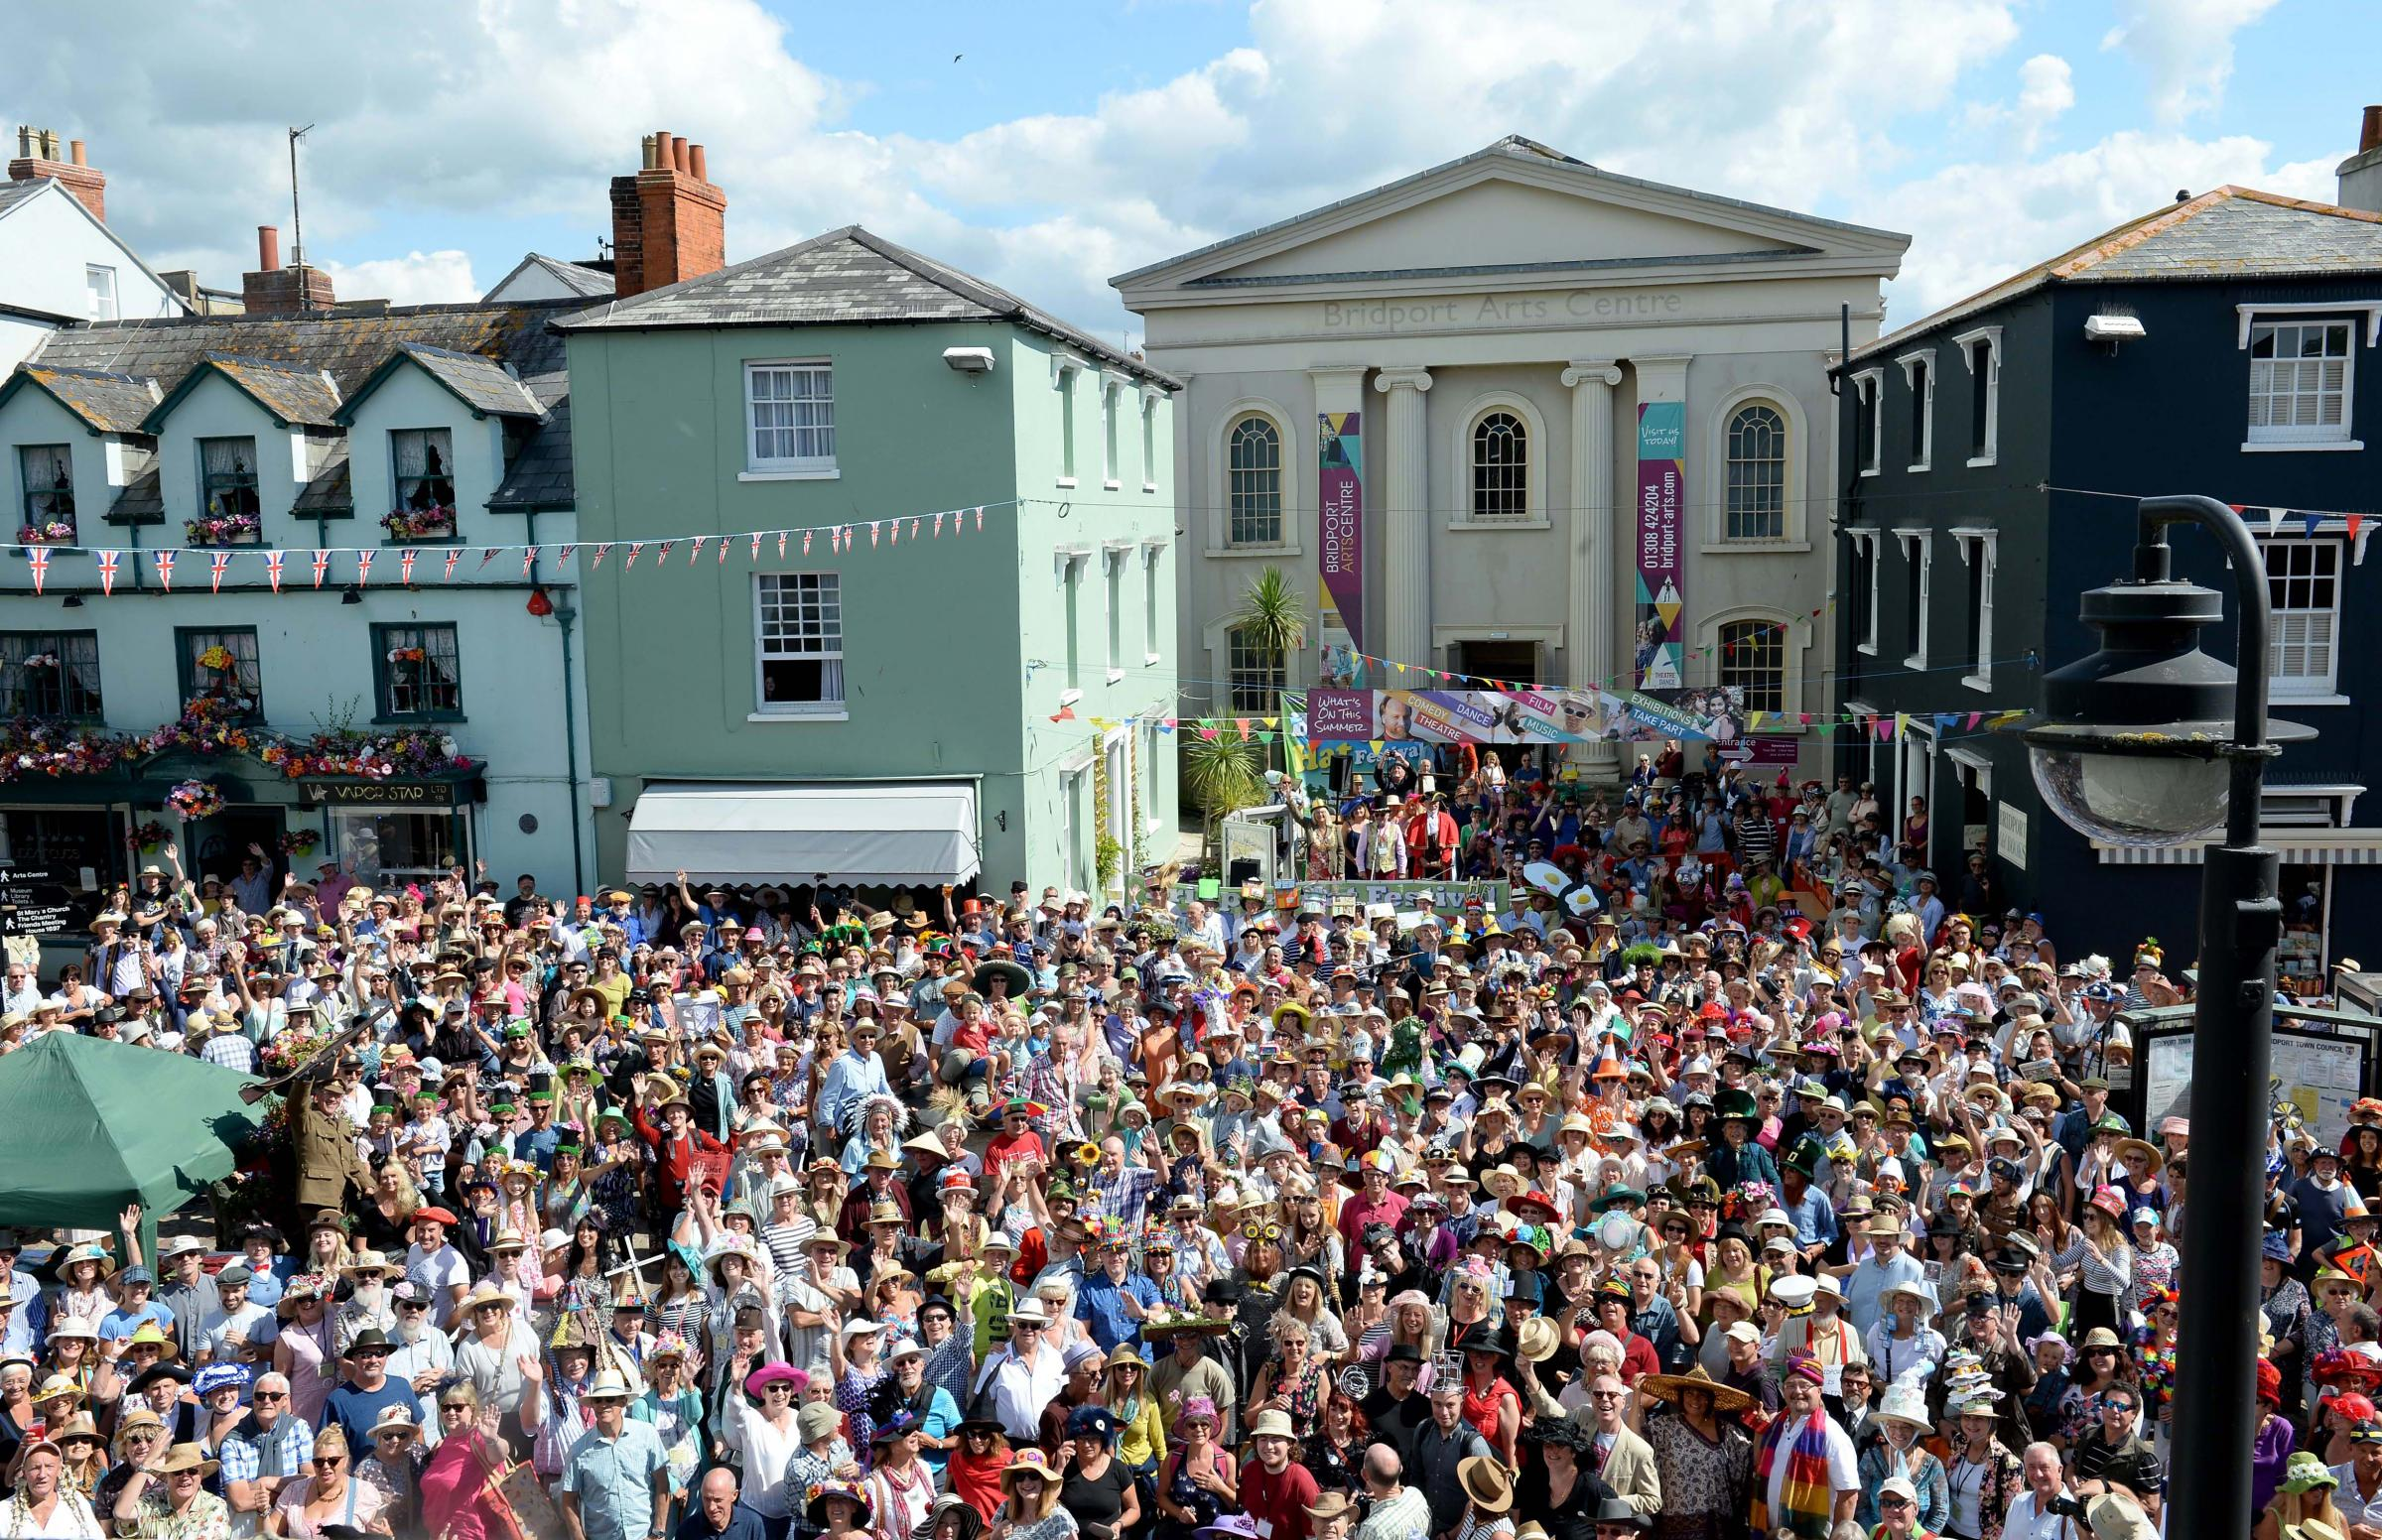 HATS OFF: One of Bridport's charms is the eccentric annual Hat Festival   Picture: FIinnbarr Webster